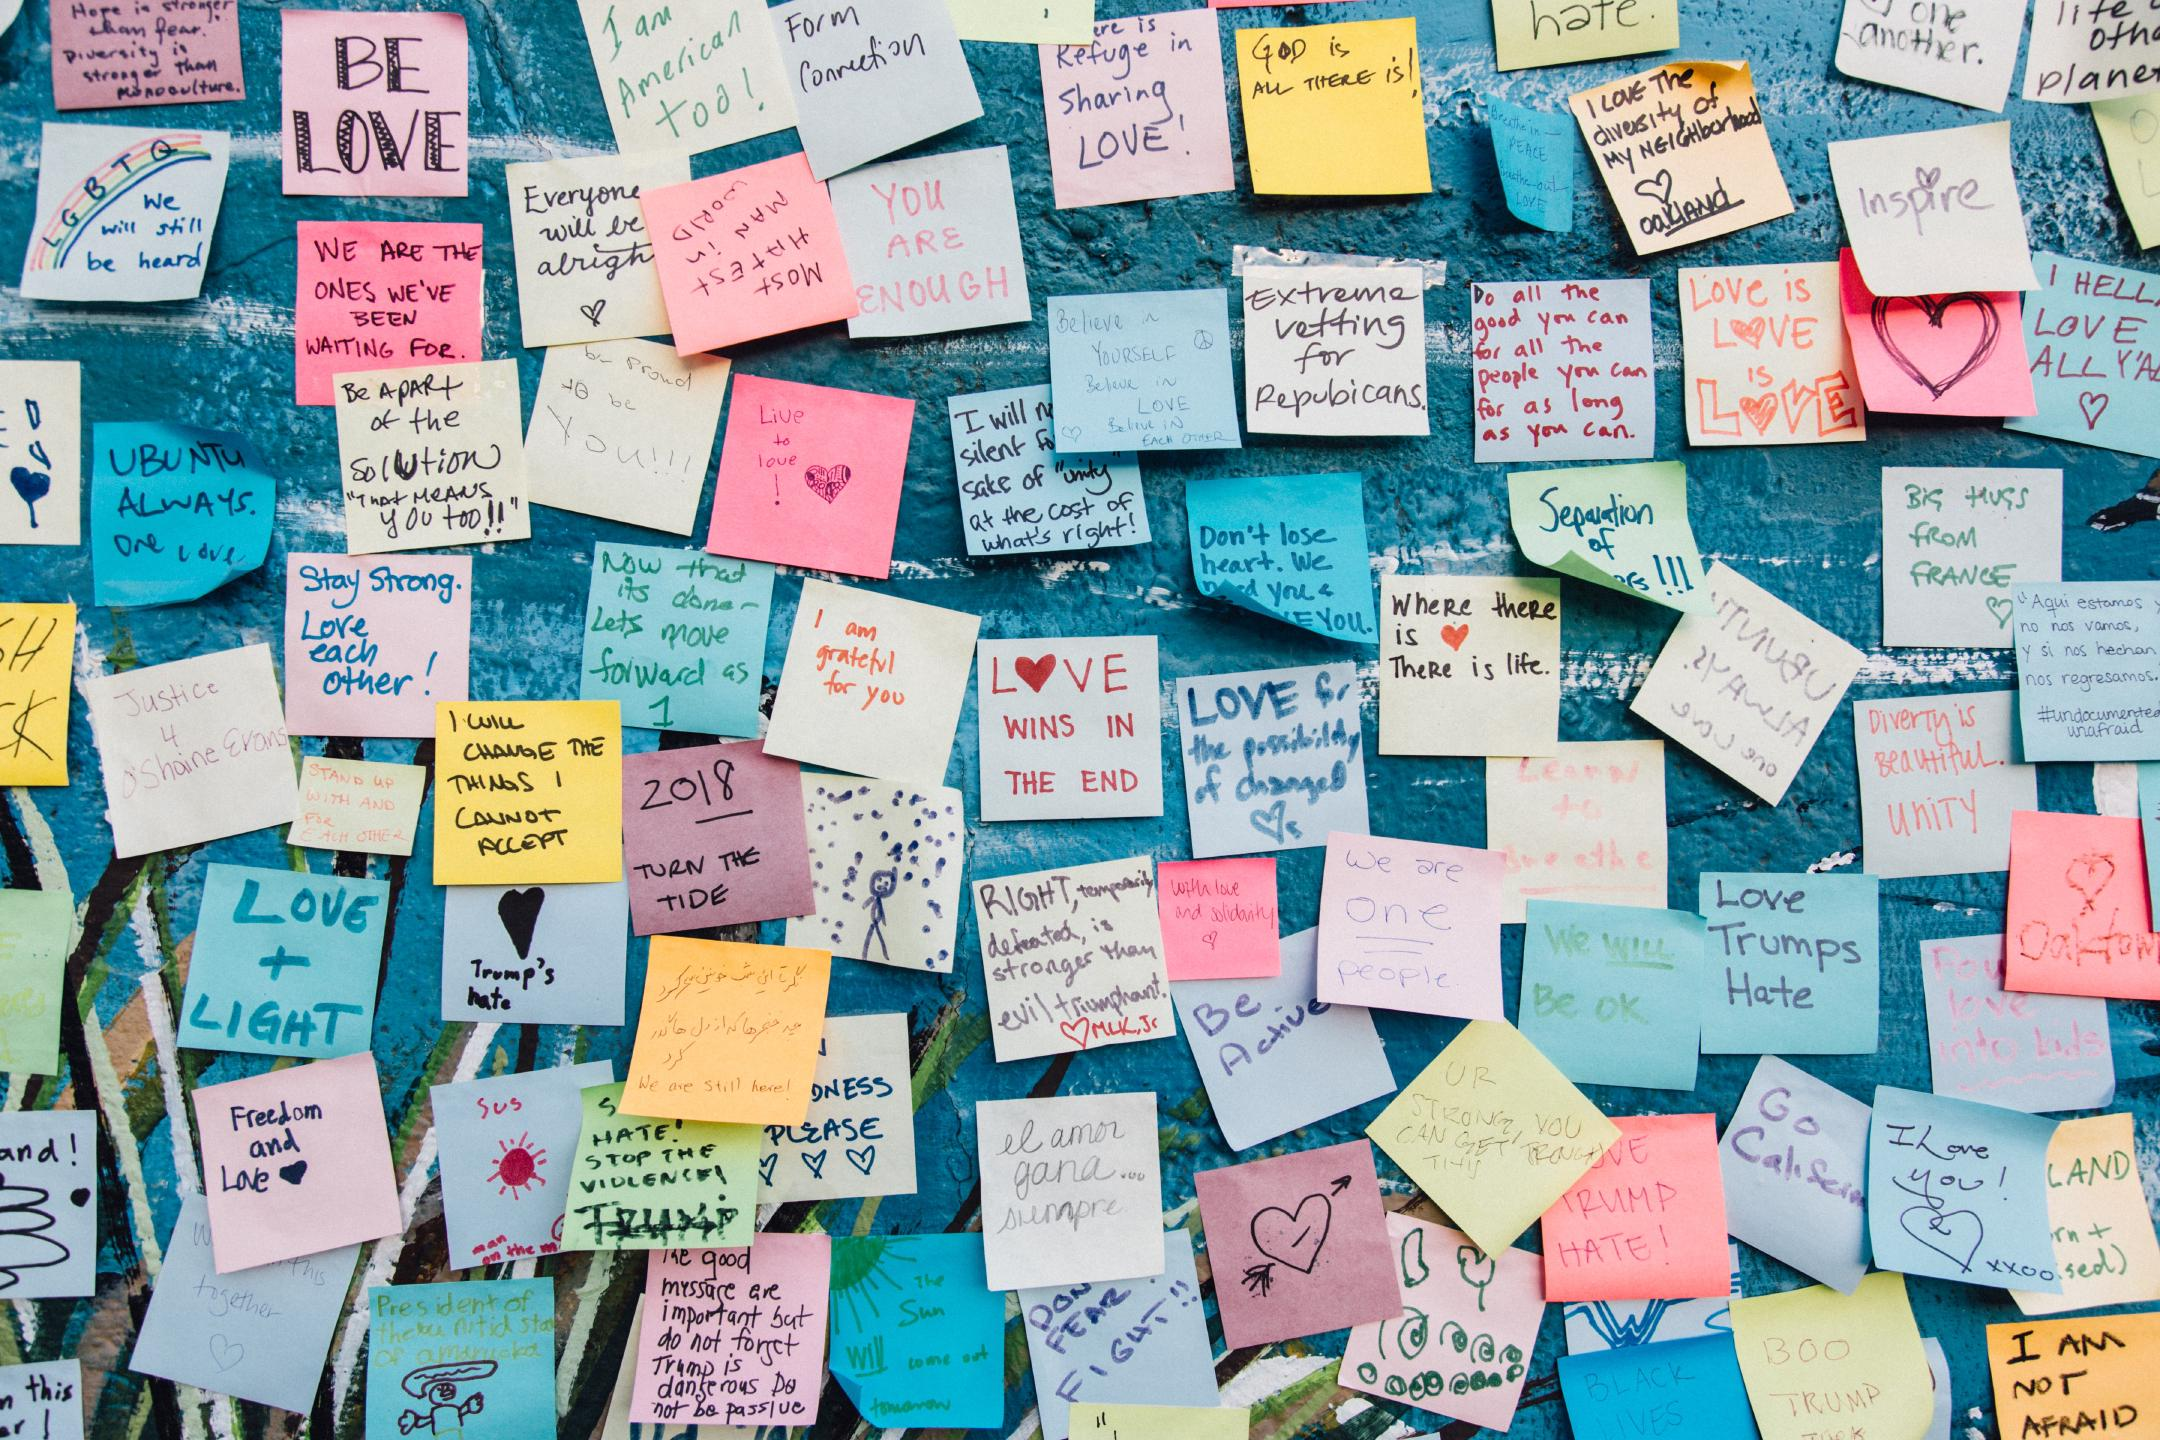 a wall full of colorful post-it notes with various pro-love anti-hate messages